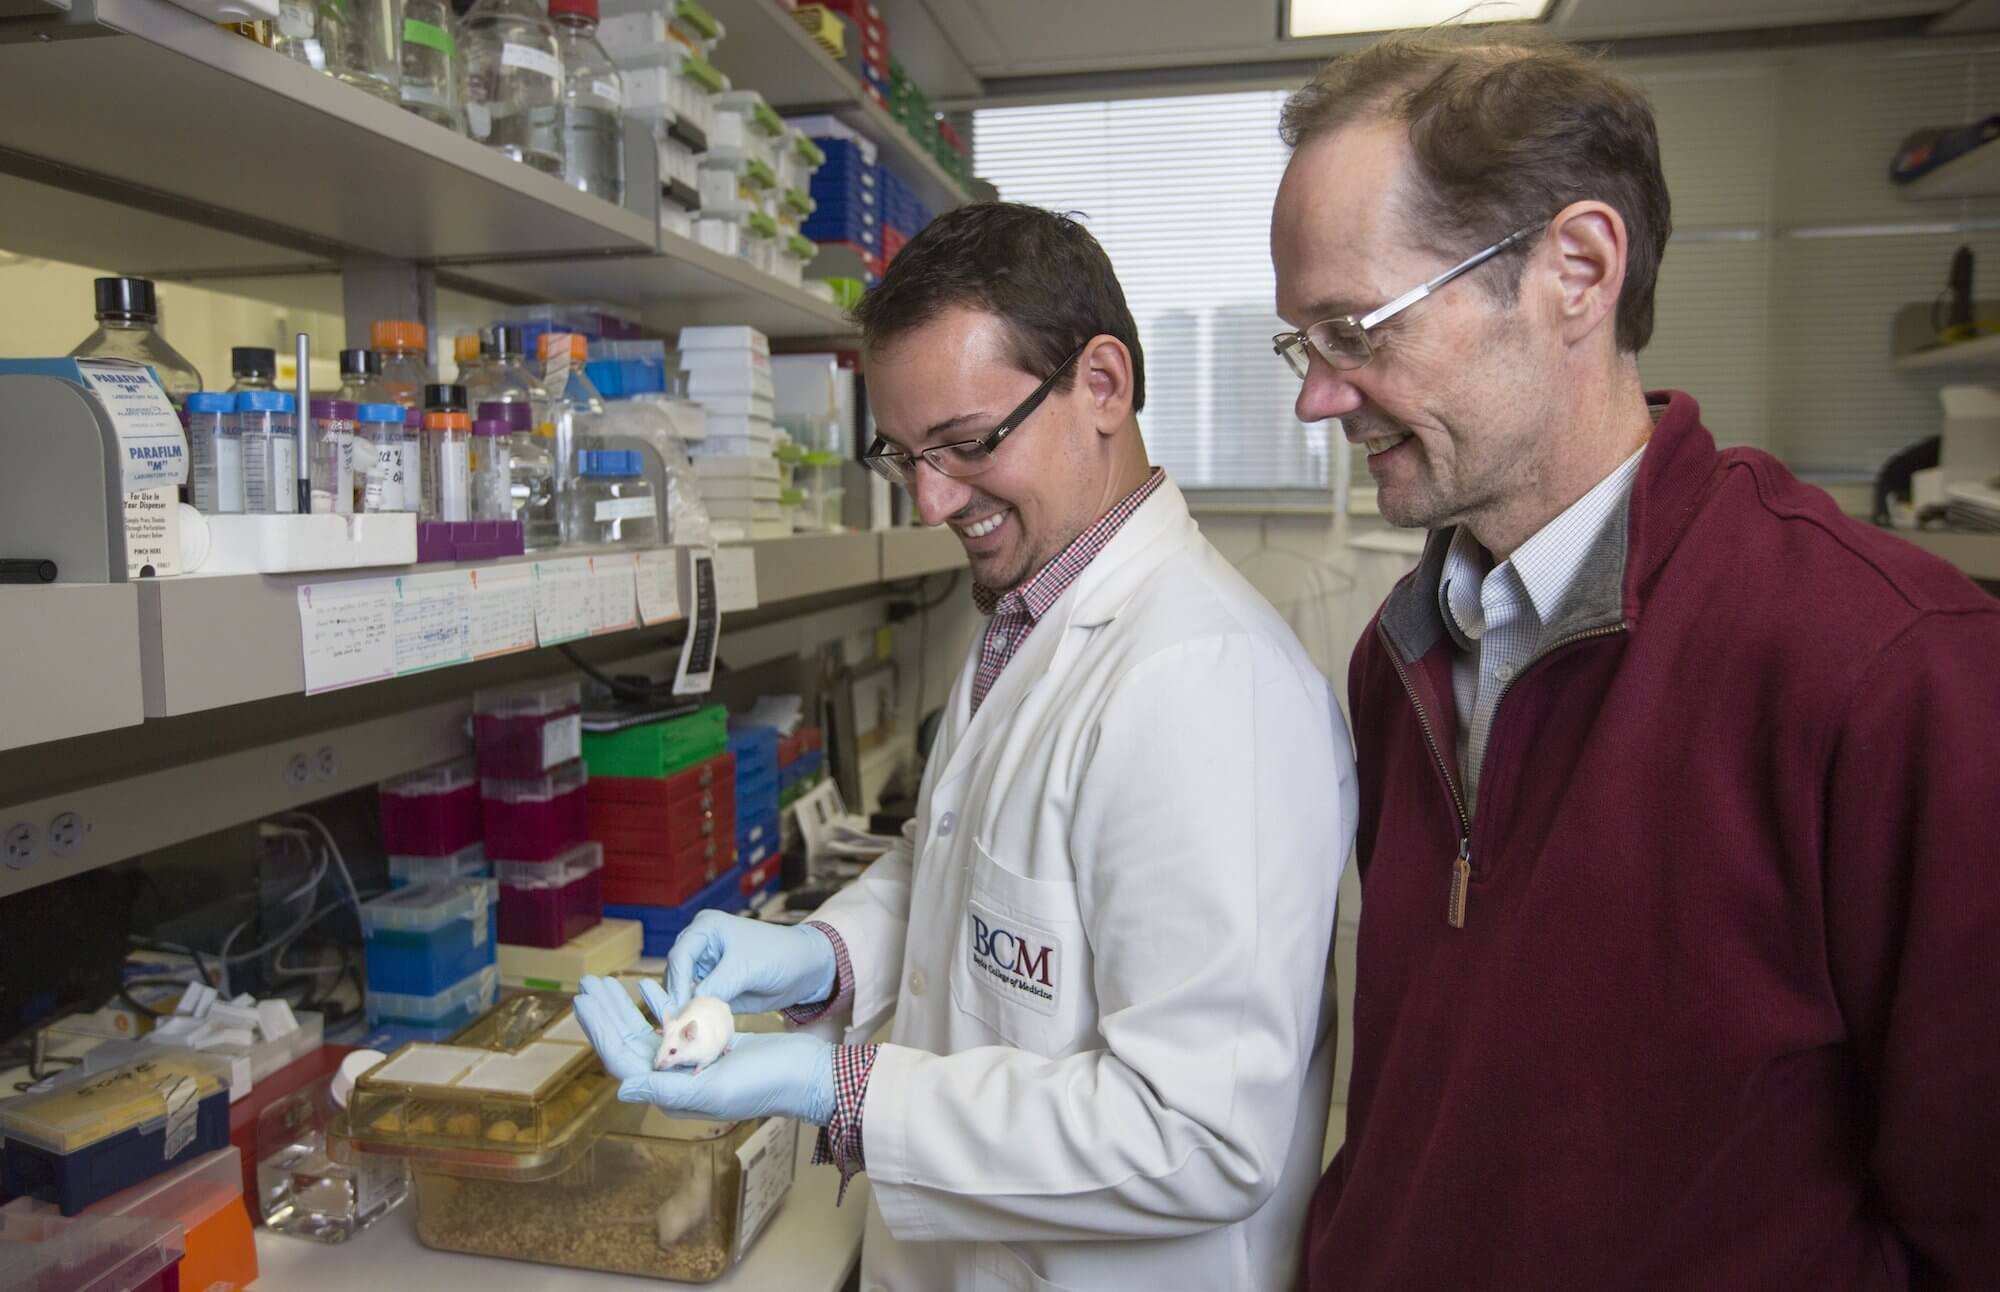 John Leach, a graduate student of molecular physiology and biophysics at Baylor College of Medicine, and James Martin, M.D., Ph.D., professor and Vivian L. Smith Chair in Regenerative Medicine at Baylor and director of the Cardiomyocyte Renewal Laboratory at Texas Heart Institute, in their lab.